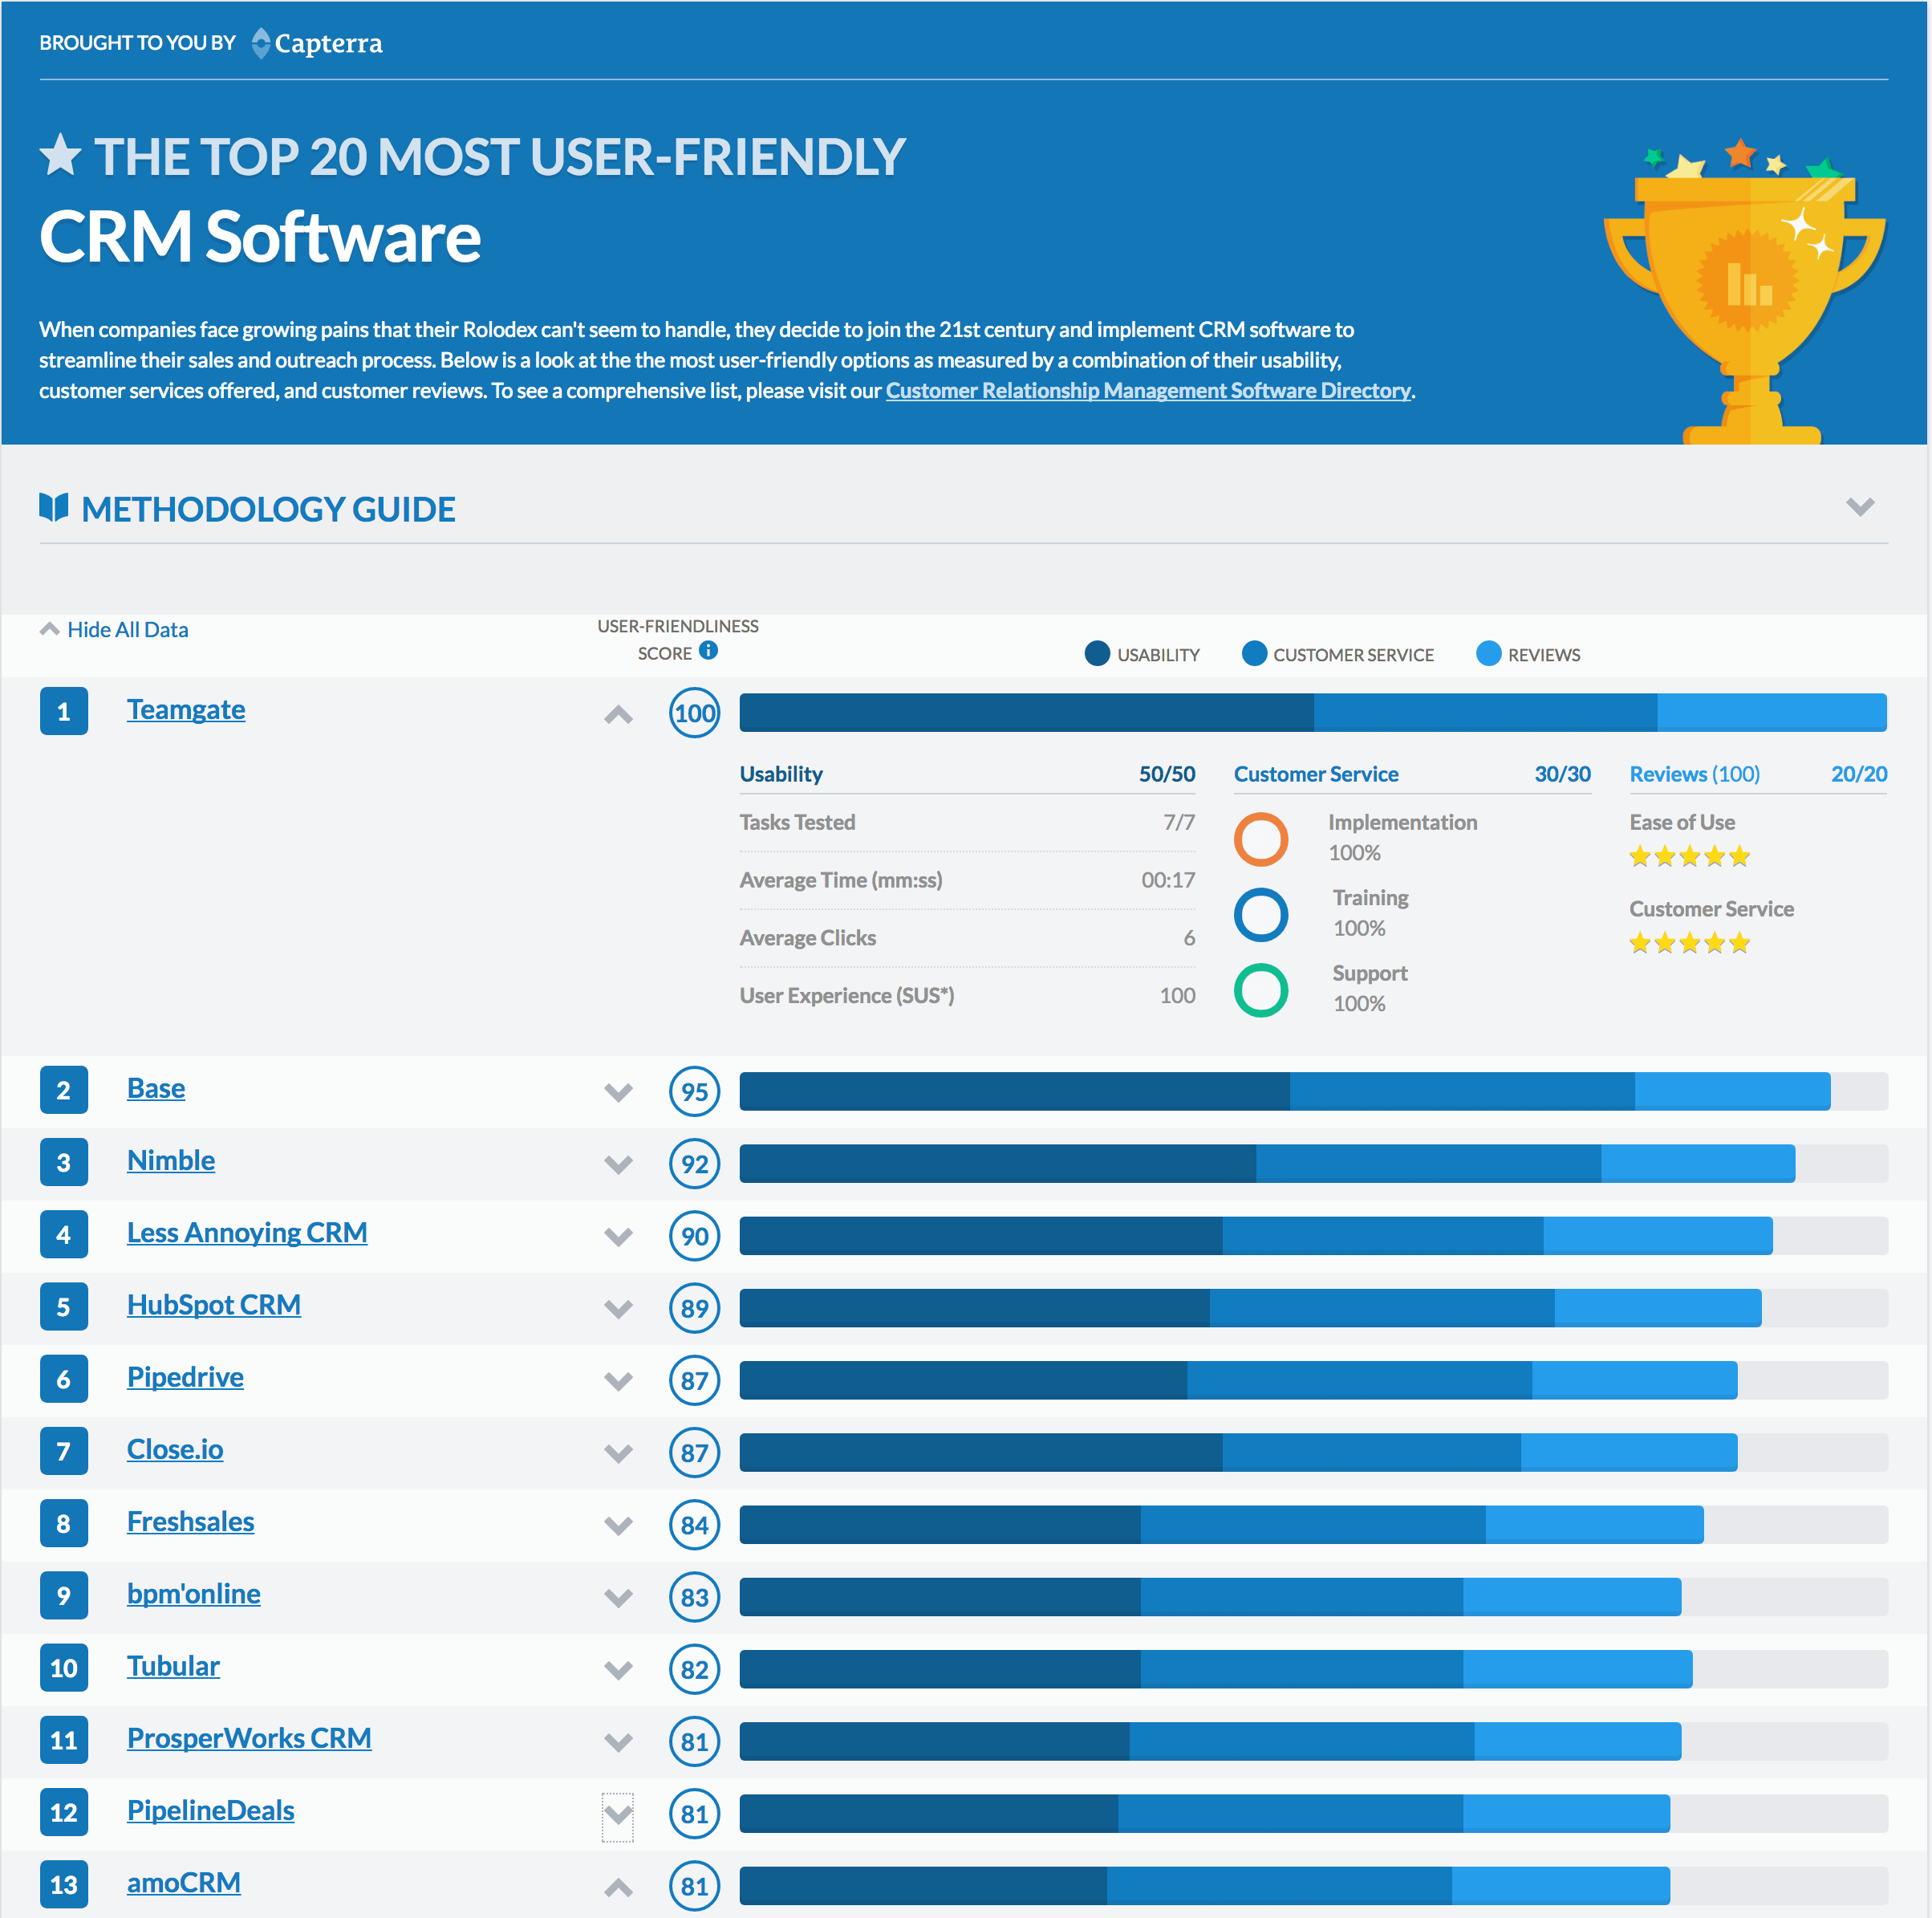 The top 20 most user-friendly CRM Software